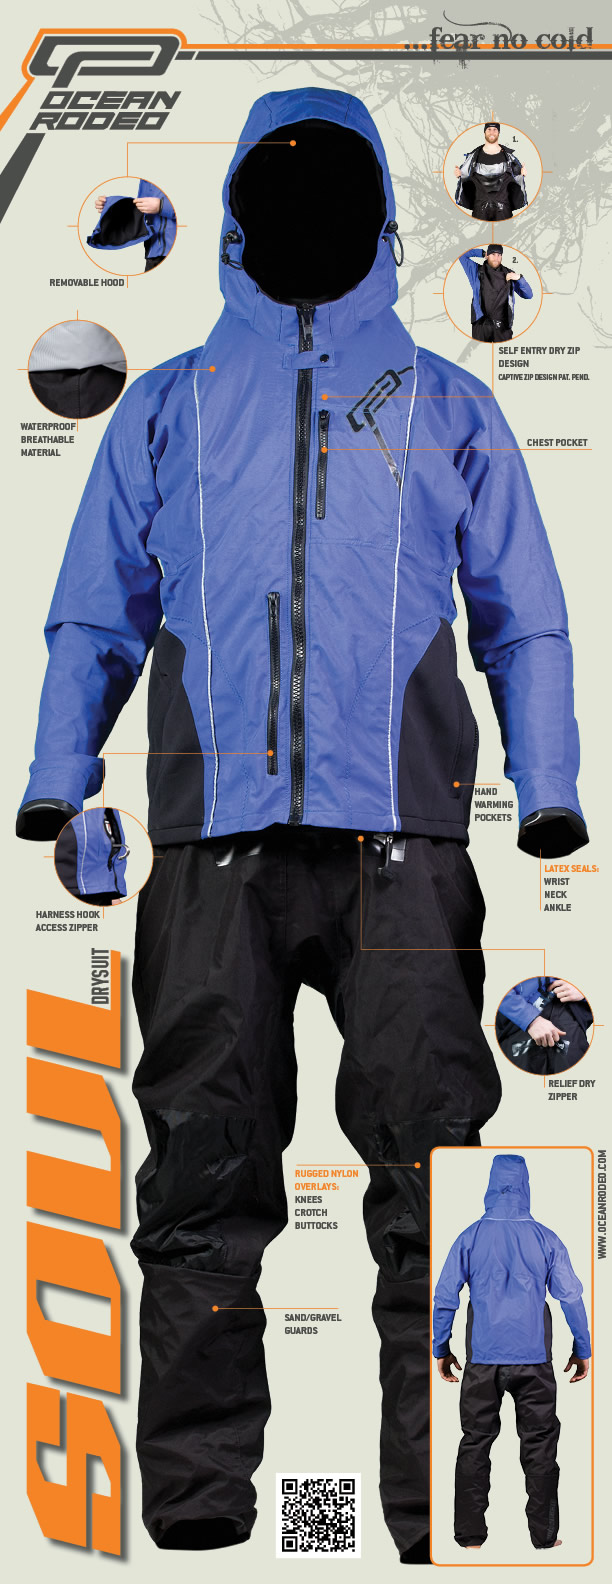 Ocean Rodeo Soul Drysuit for SUP